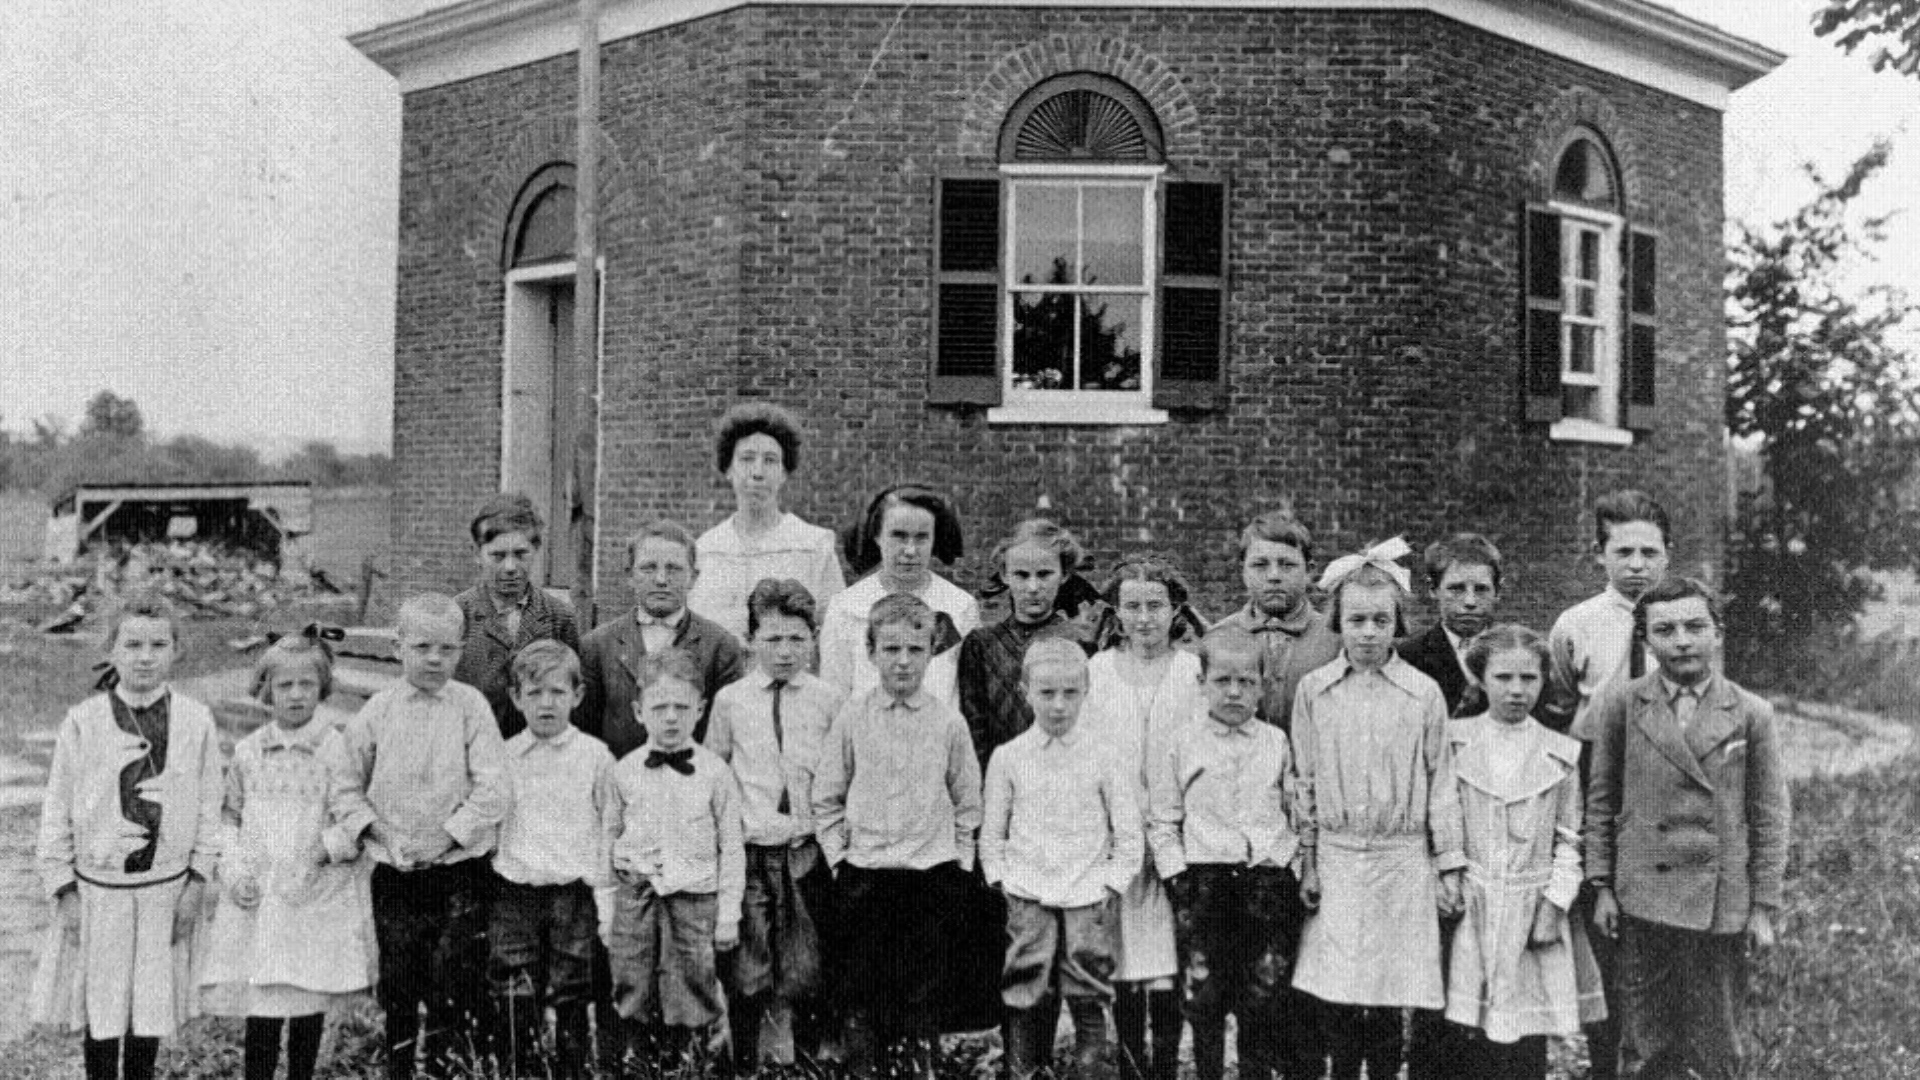 One room school house with Childern